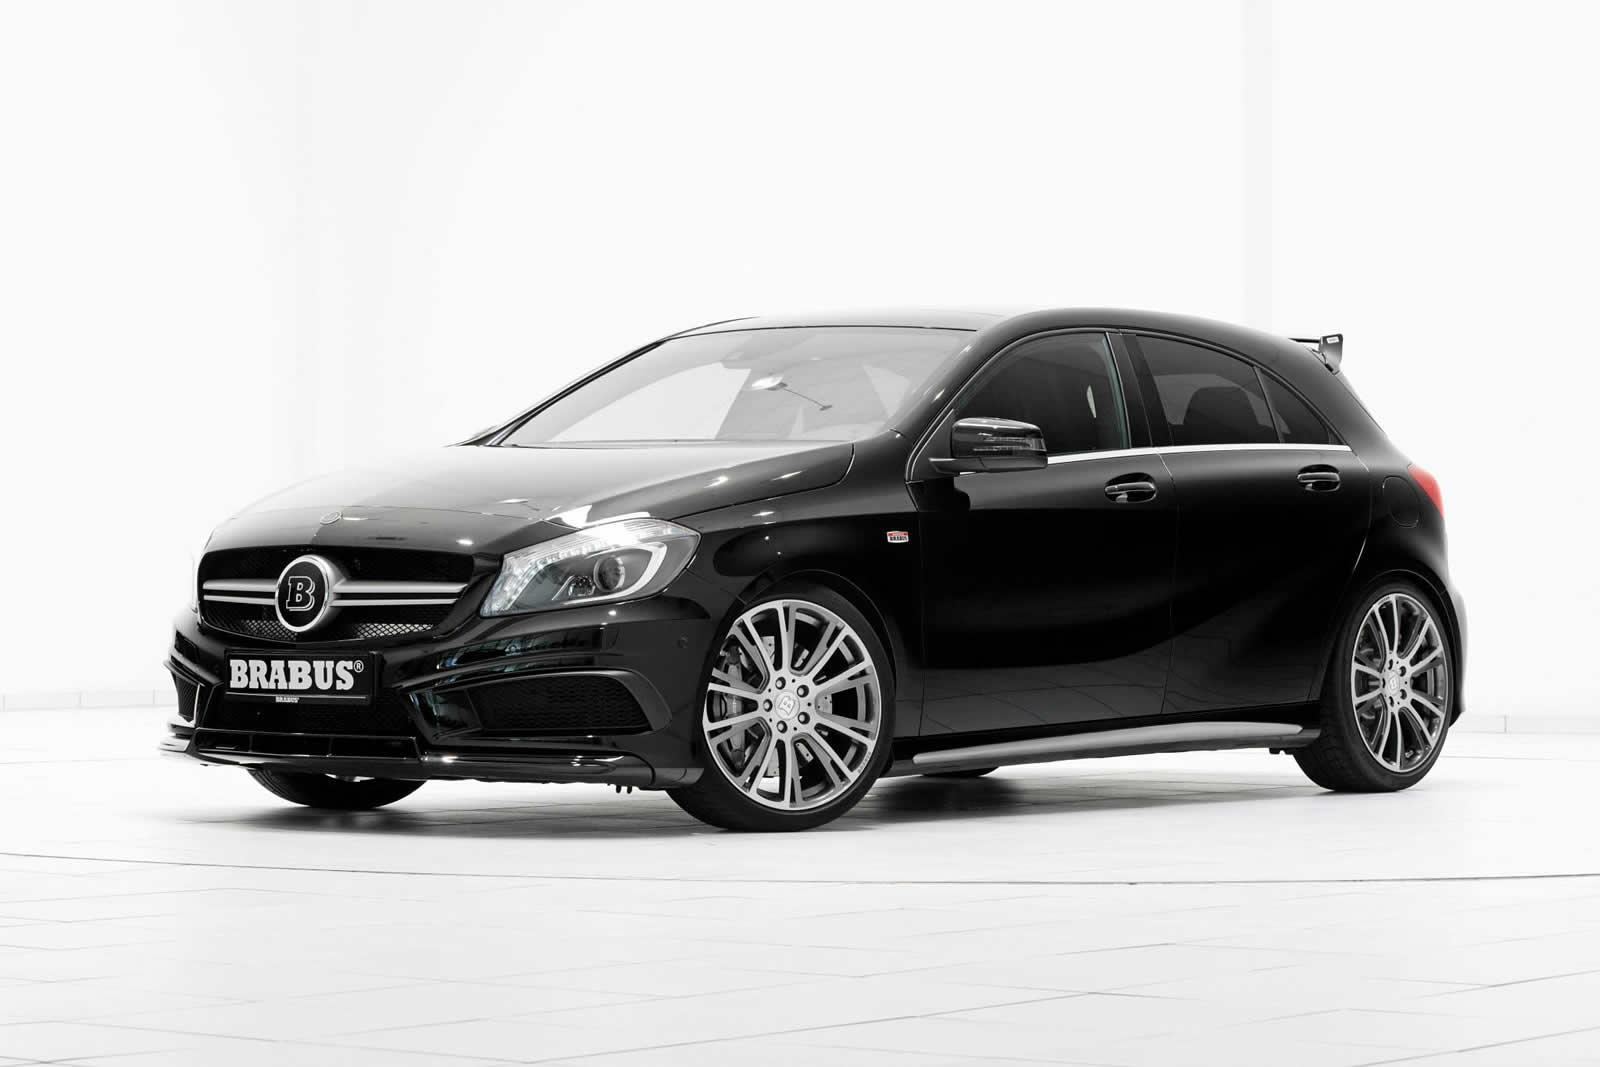 brabus mercedes benz a45 amg 400hp and 500nm. Black Bedroom Furniture Sets. Home Design Ideas